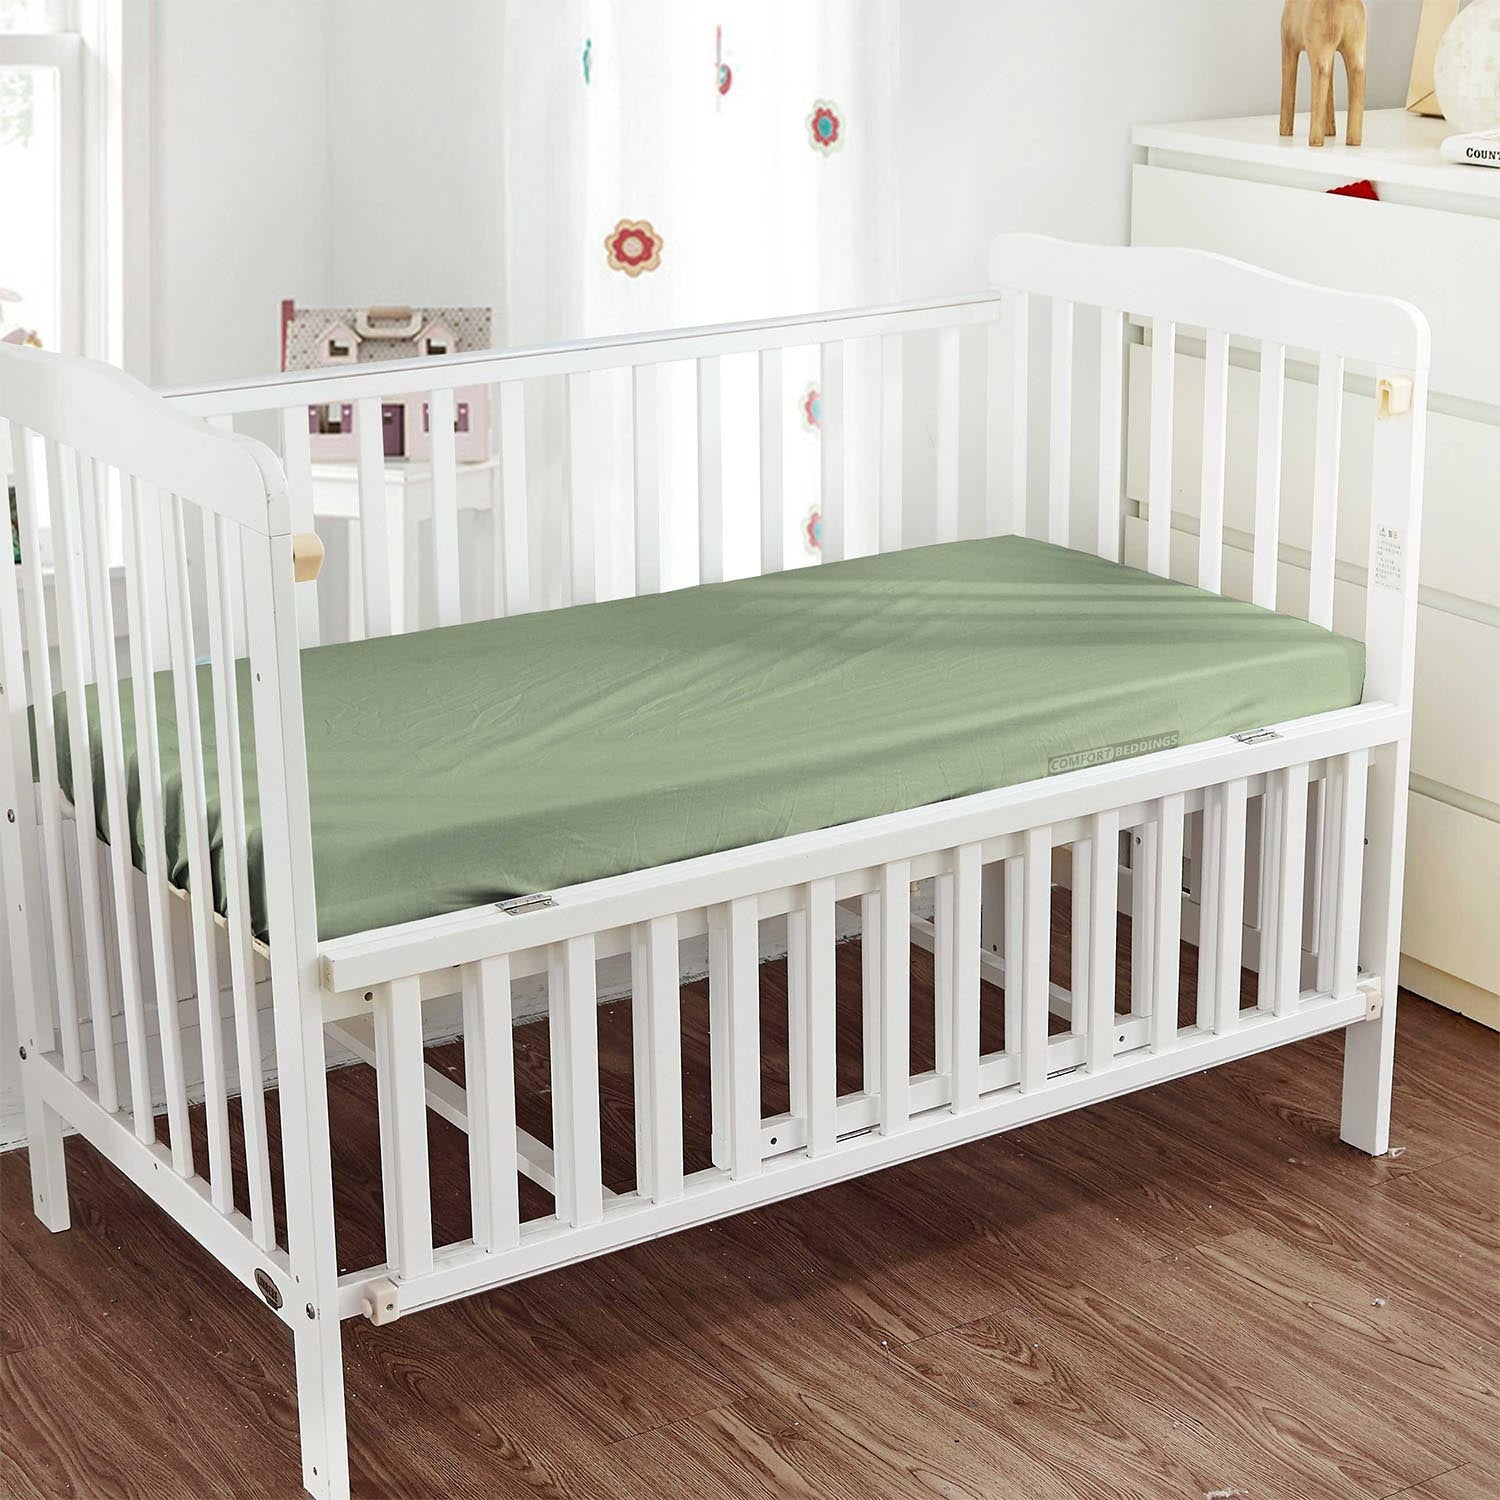 Luxury Moss Fitted Crib Sheets - 600 and 1000TC